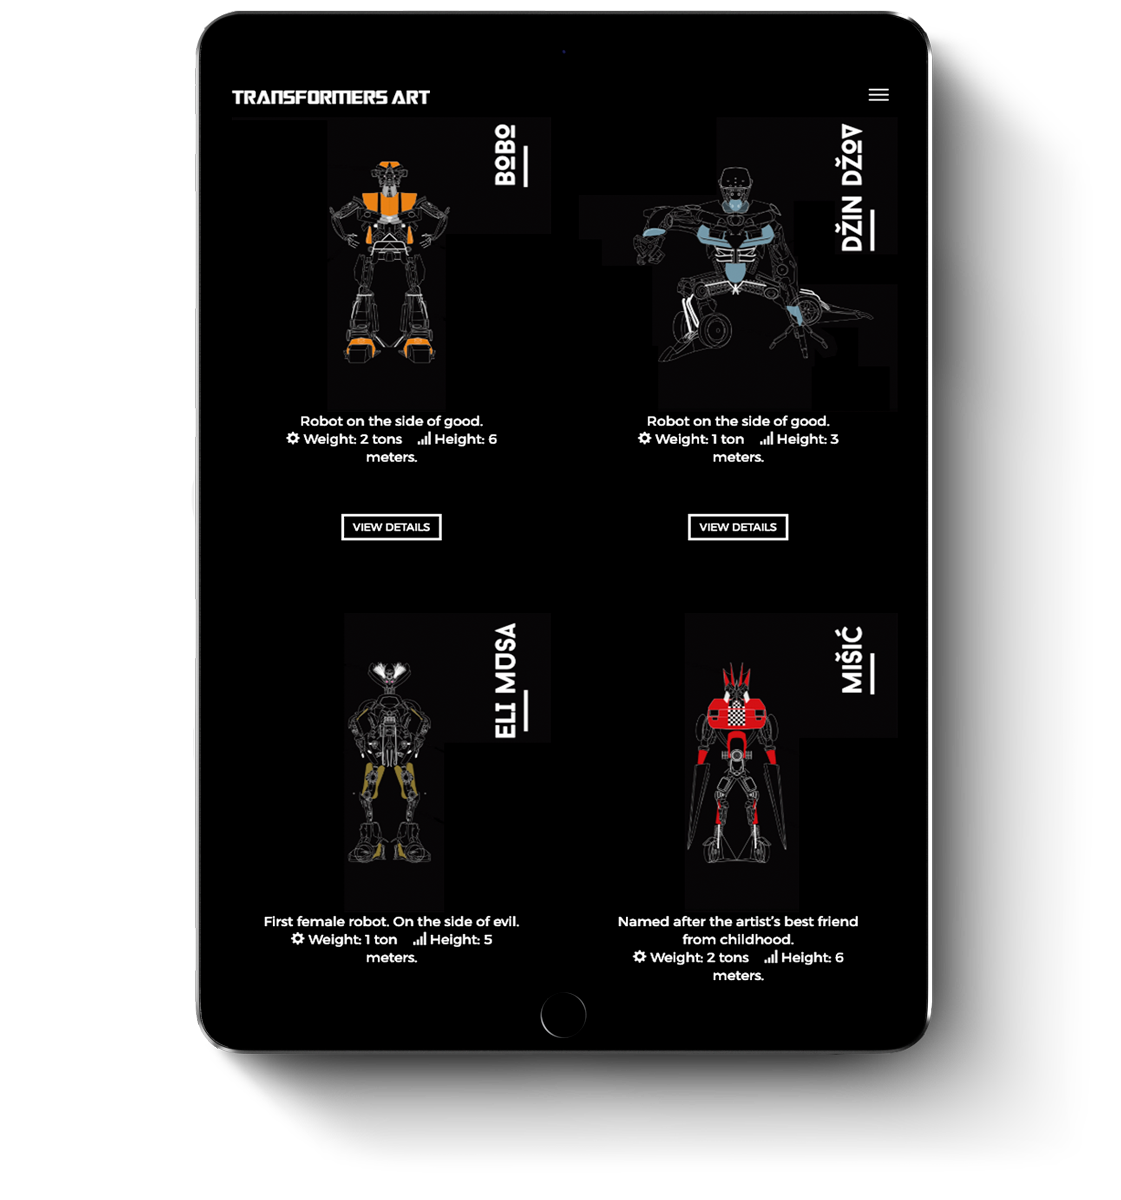 Web design for mobile devices and tablets of Transformers Art